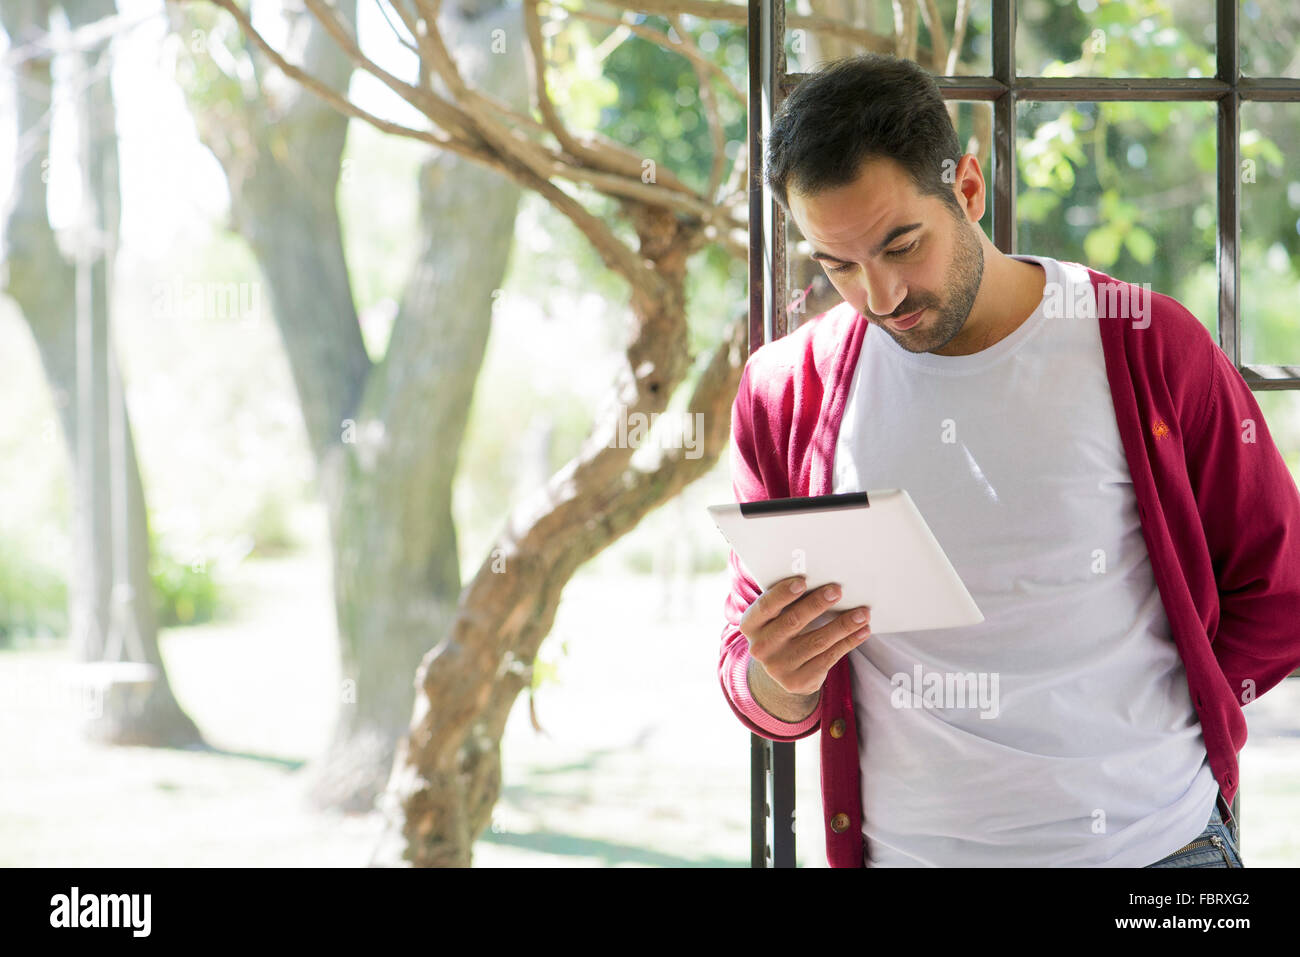 Man using digital tablet at home - Stock Image